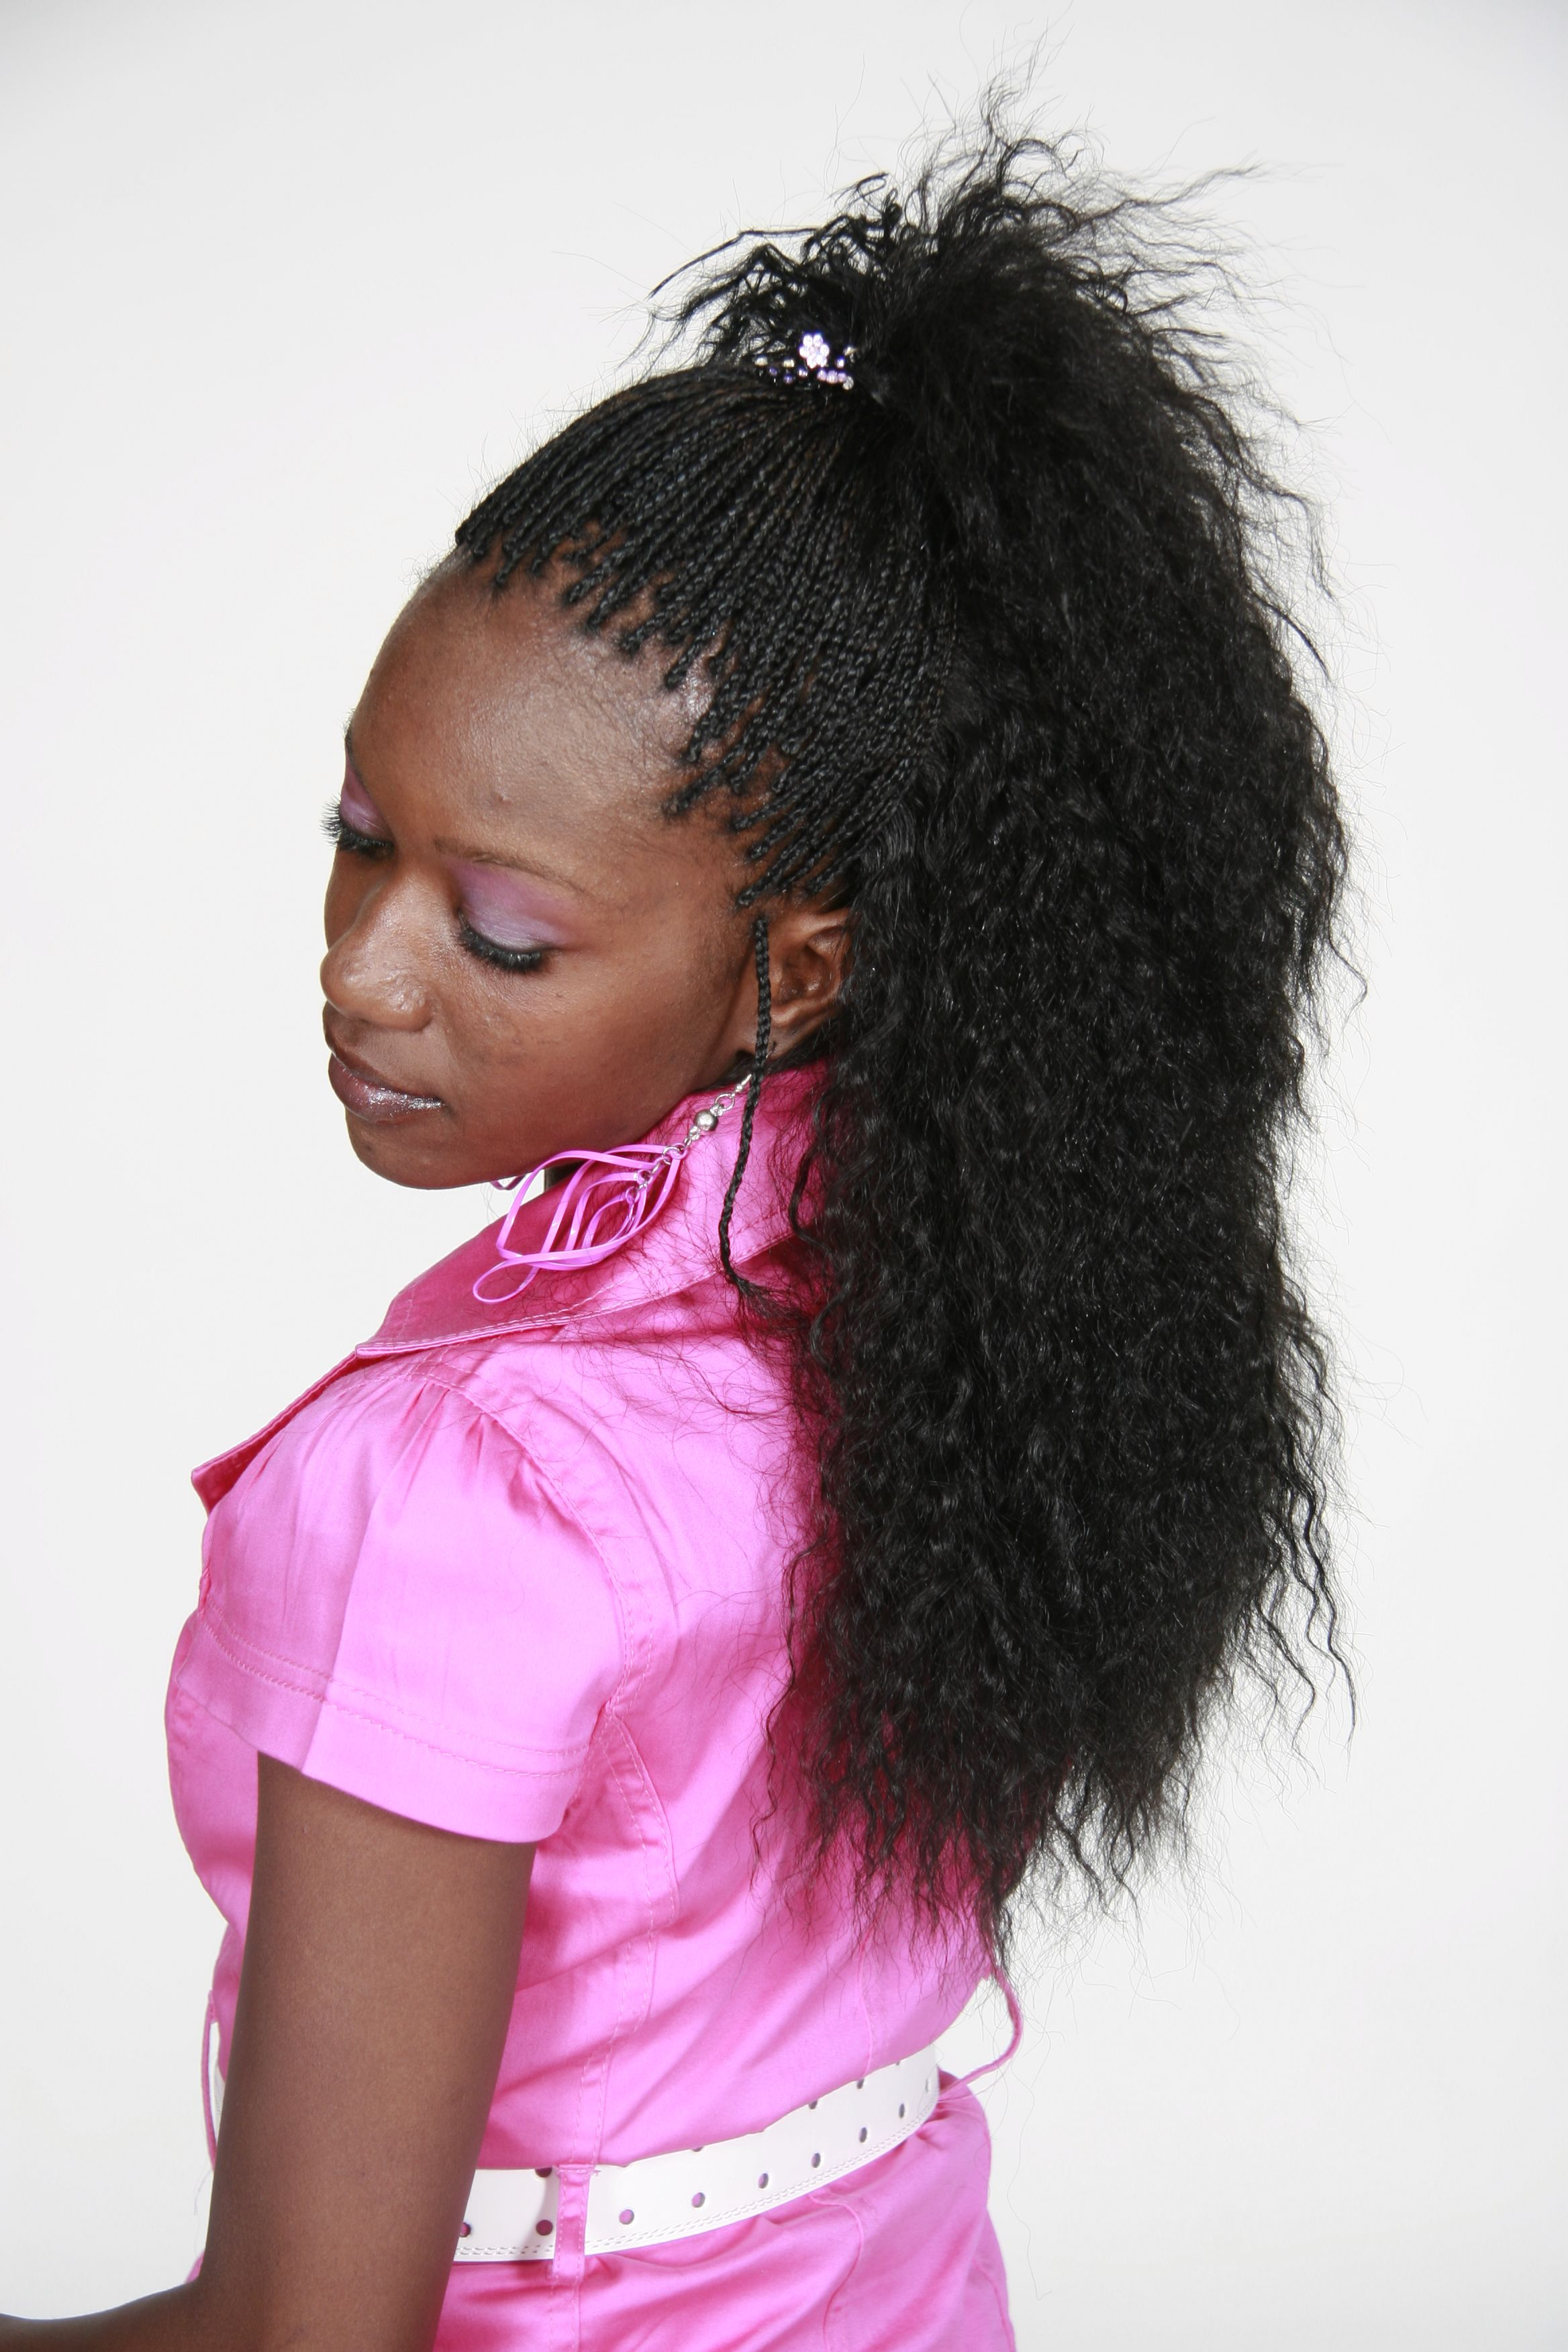 this style is called a semi-zillion which is braids around the